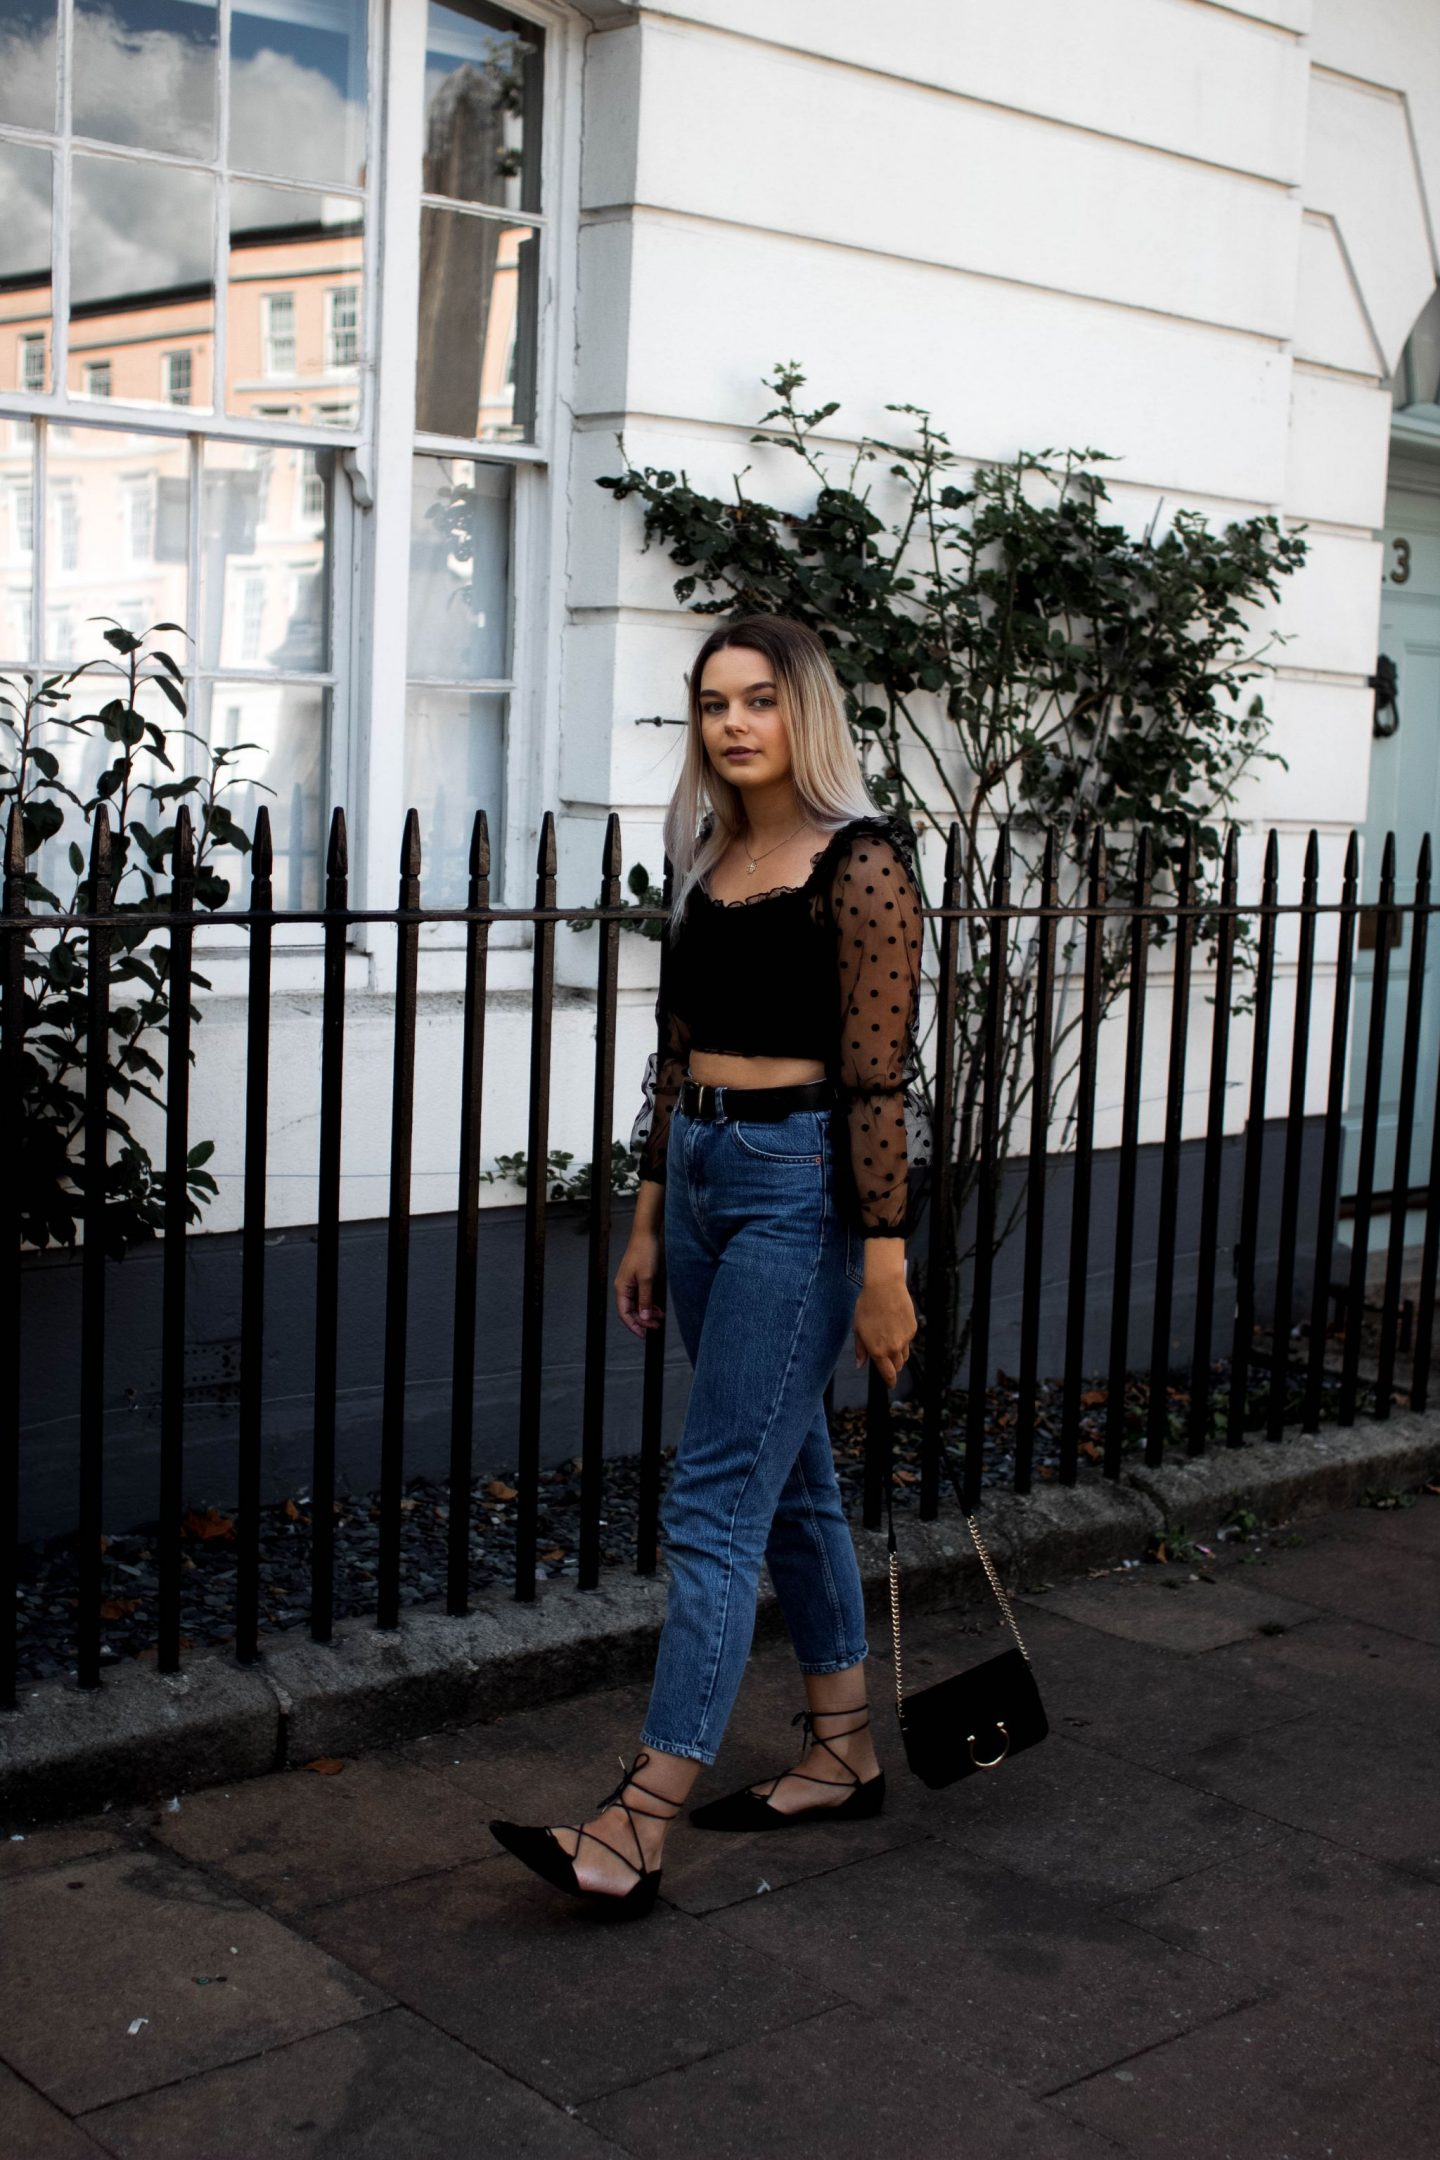 Trends To Look Out For in Transitional Dressing